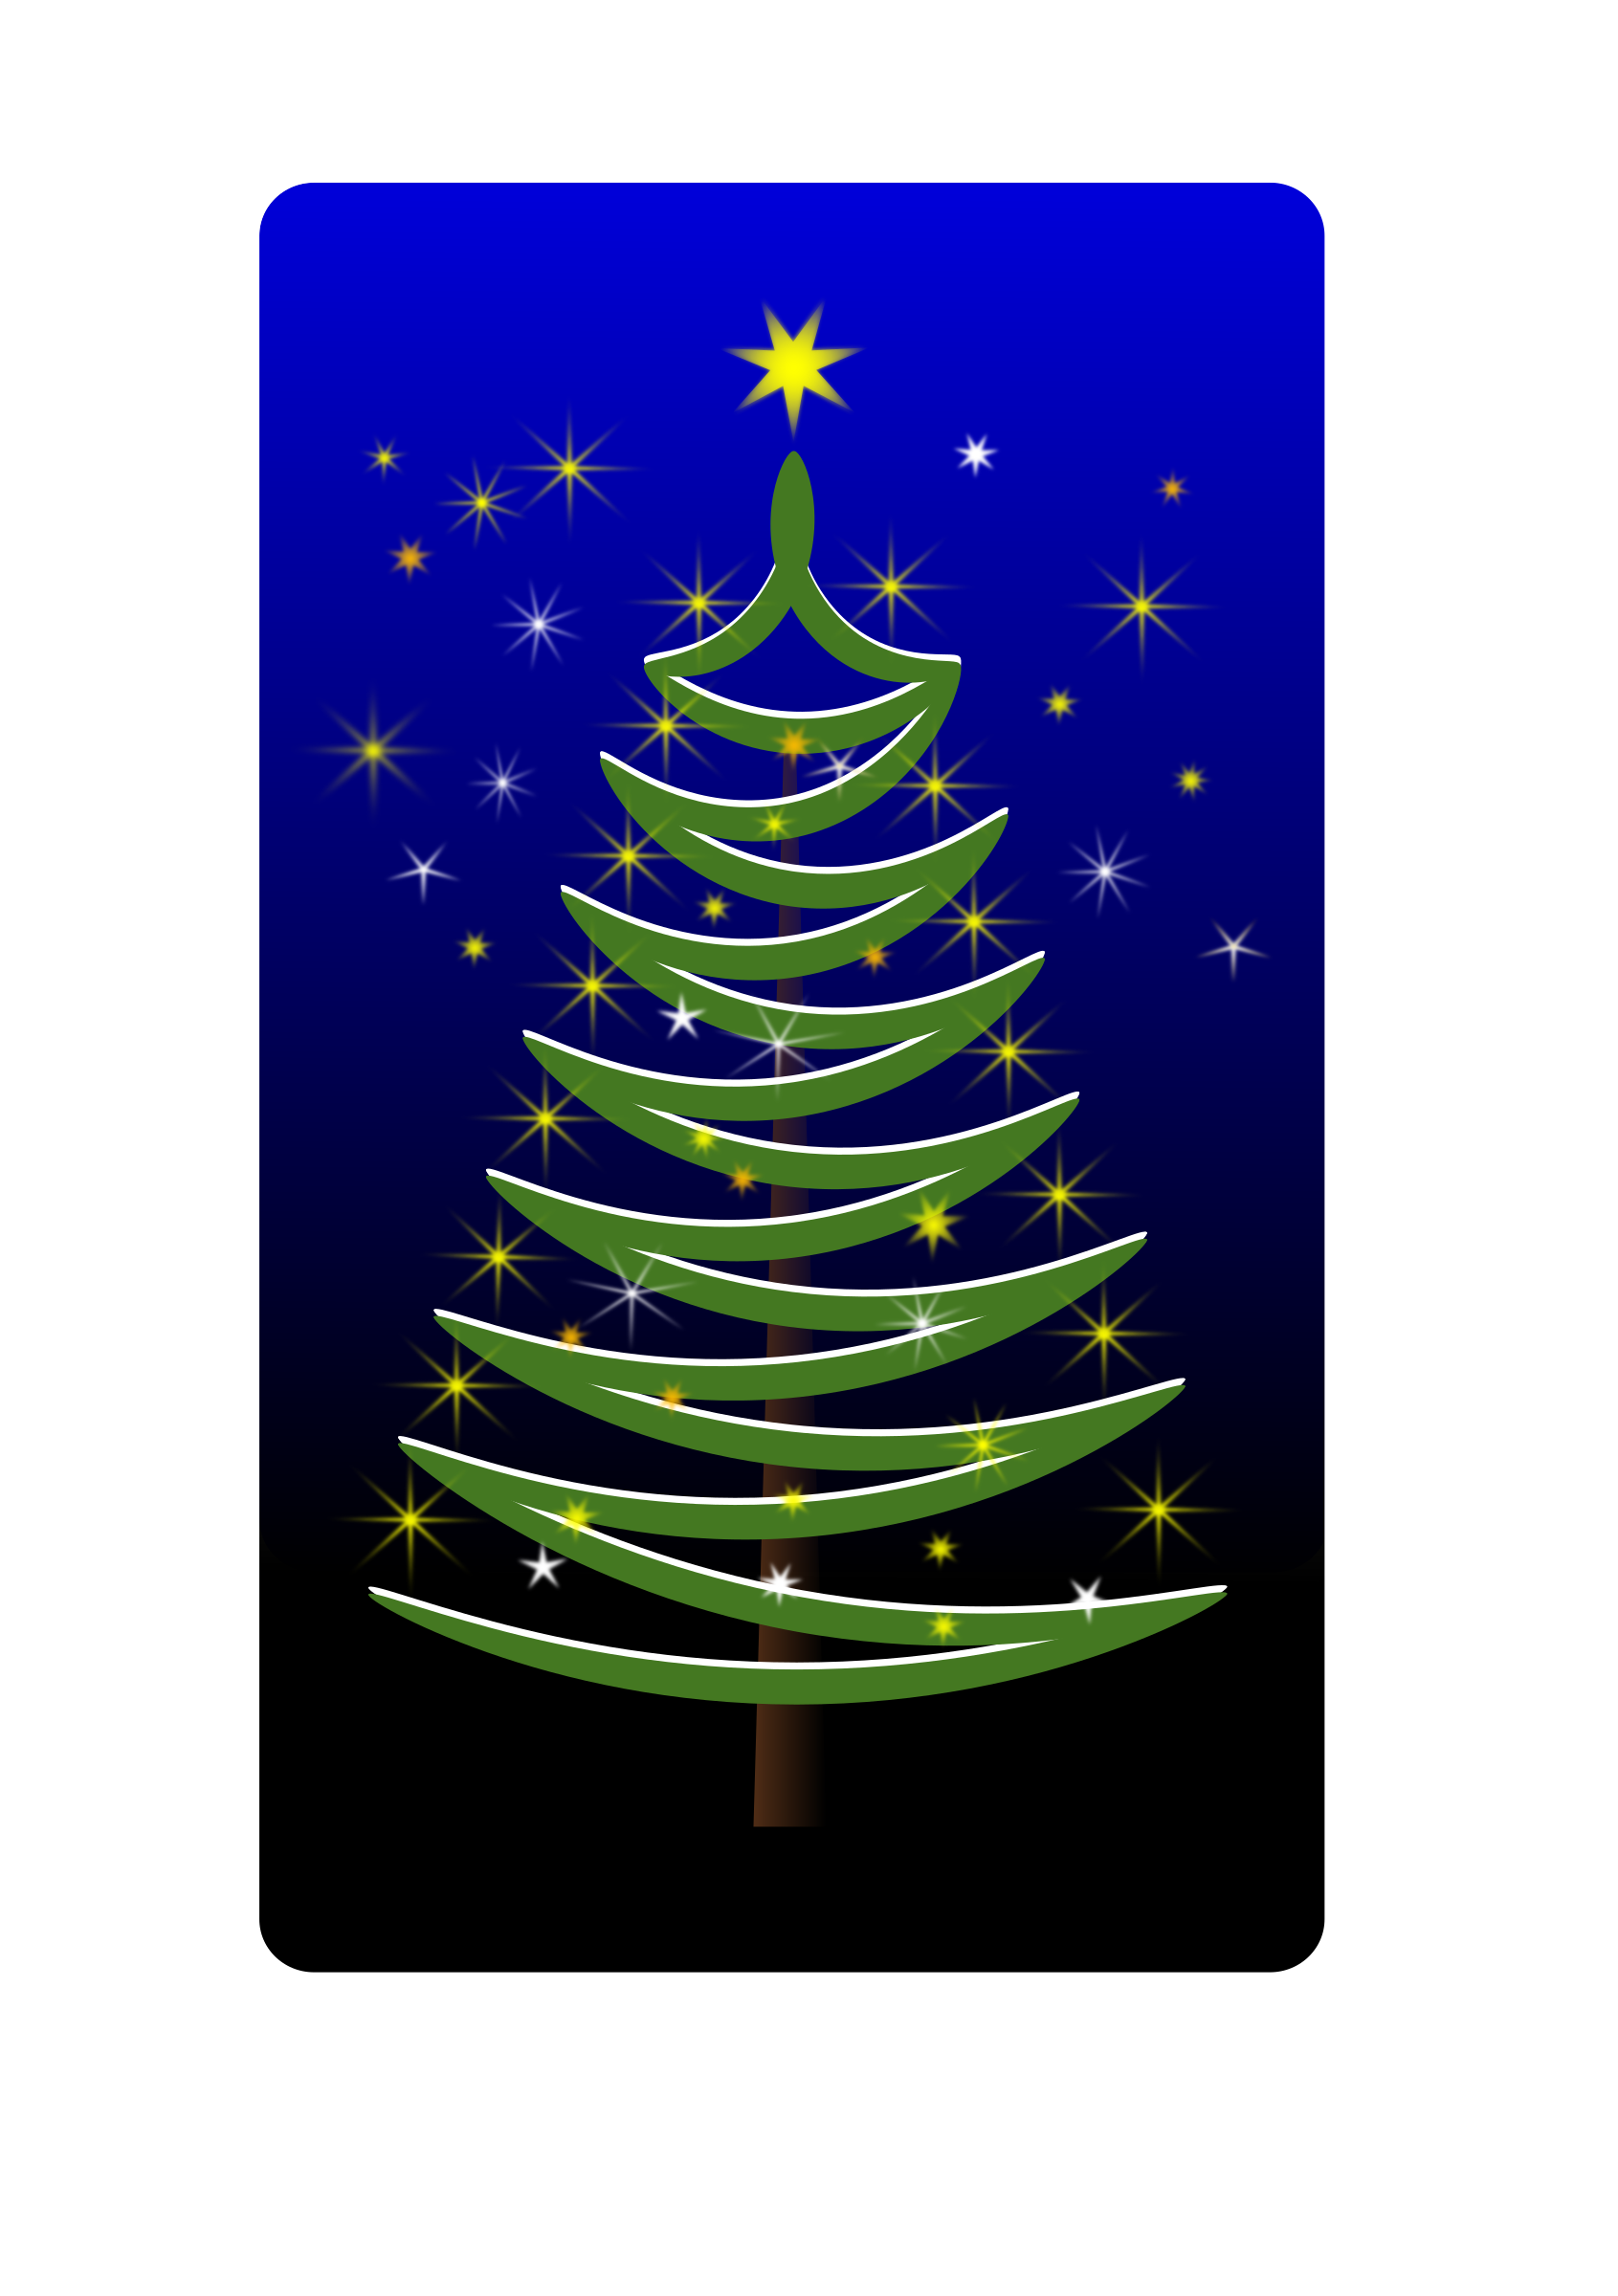 stylised christmas tree by Helm42